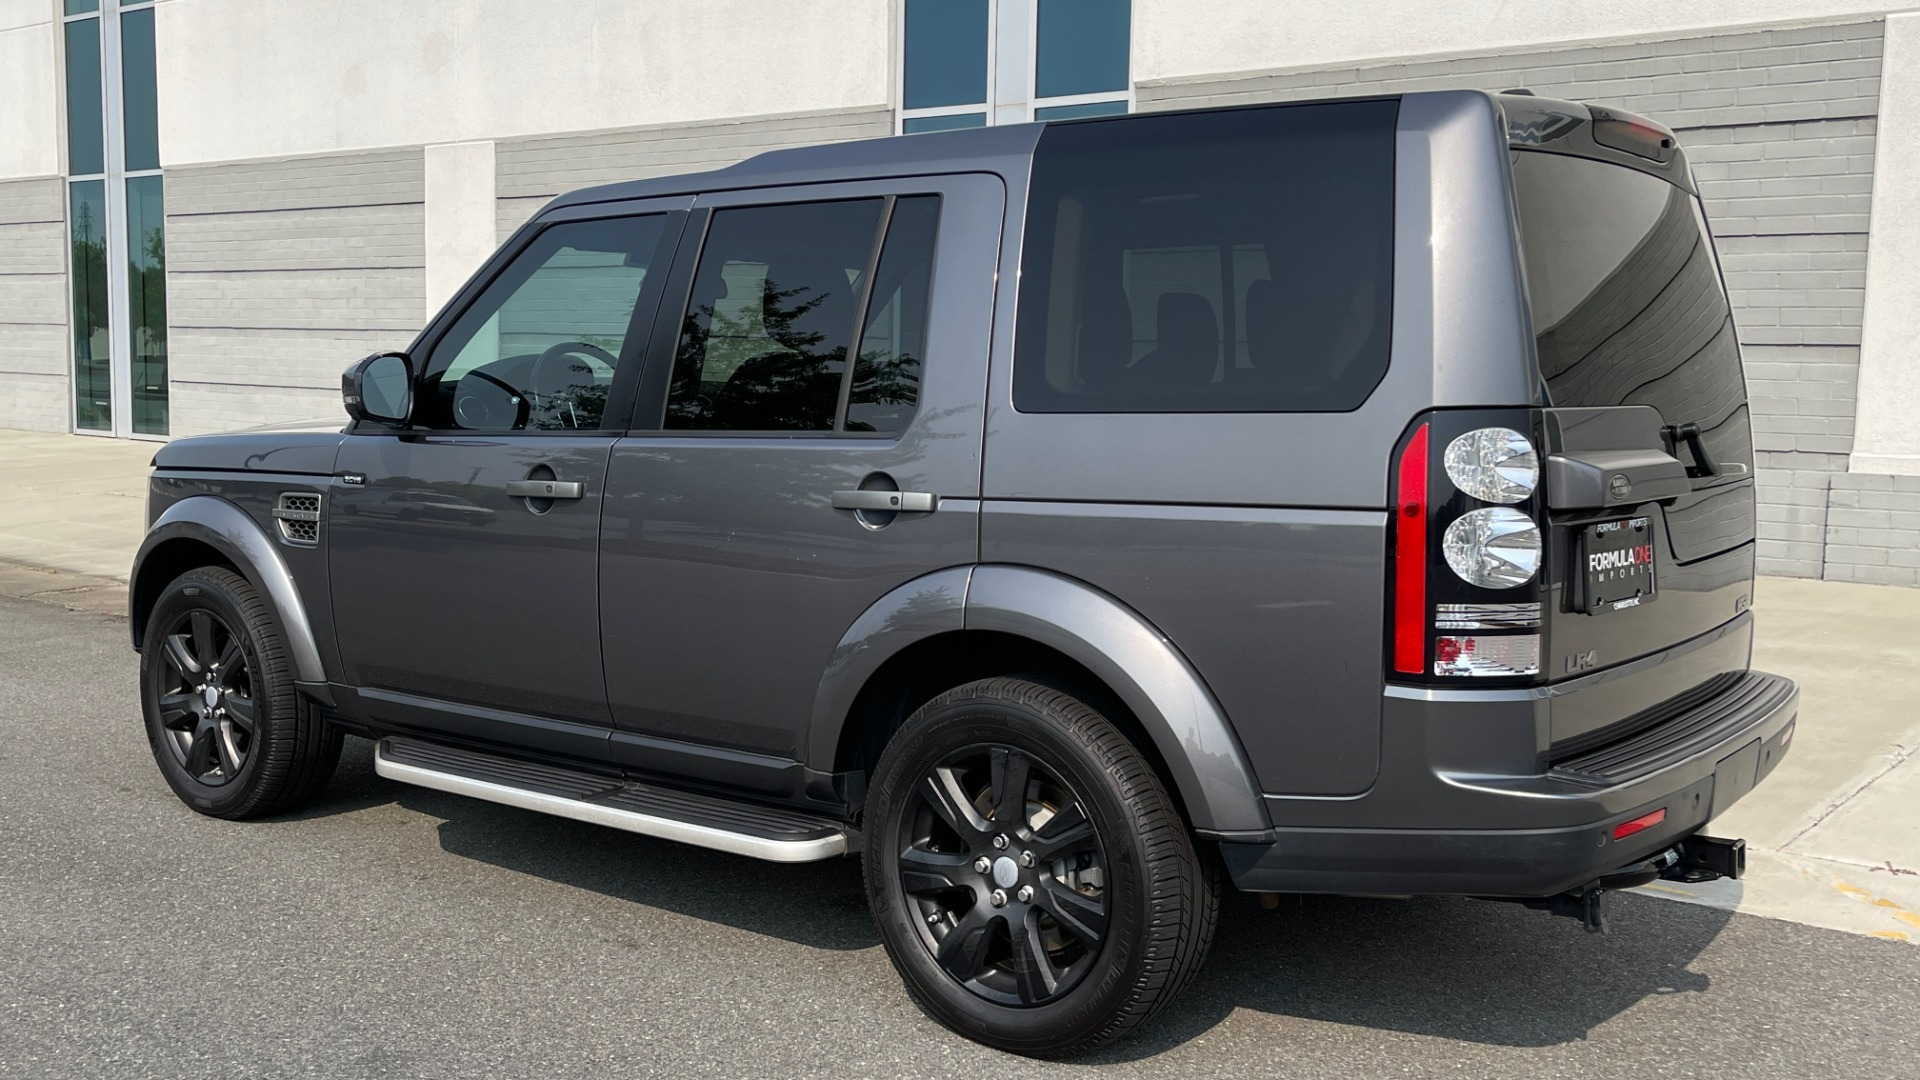 Used 2016 Land Rover LR4 HSE / NAV / SUNROOF / 3-ROW / MERIDIAN SOUND SYS / REARVIEW for sale $30,995 at Formula Imports in Charlotte NC 28227 5